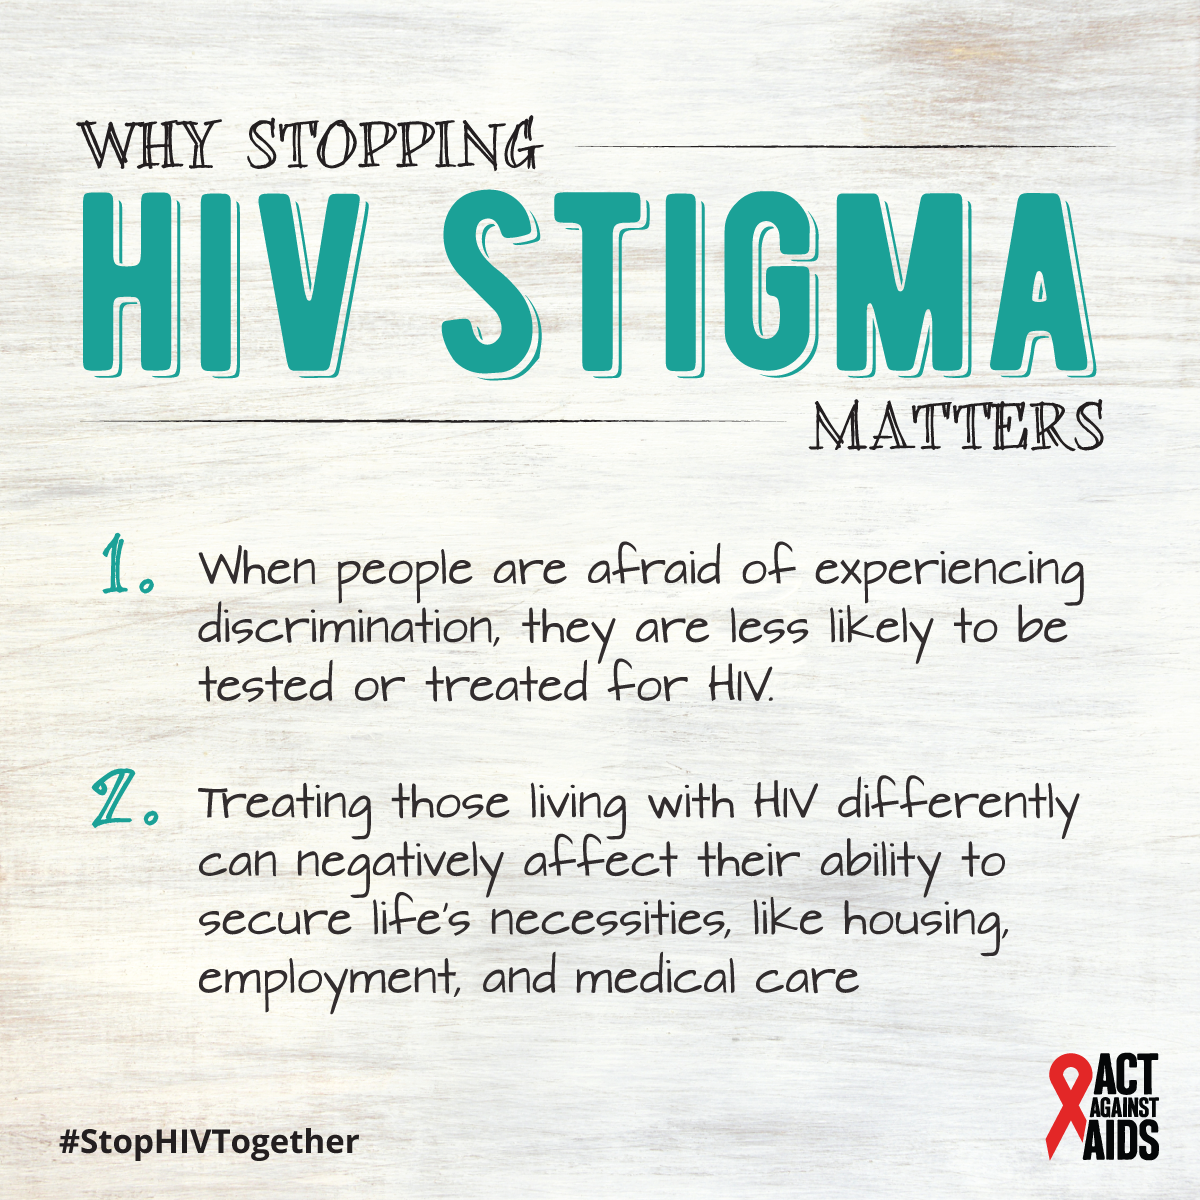 Why stopping HIV stigma matters. 1. When people are afraid of experiencing discrimination, they are less likely to be tested or treated for HIV. 2. Treating those living with HIV differently can negatively affect their ability to secure life's necessities like housing, employment, and medical care. #StopHIVTogether Act Against AIDS